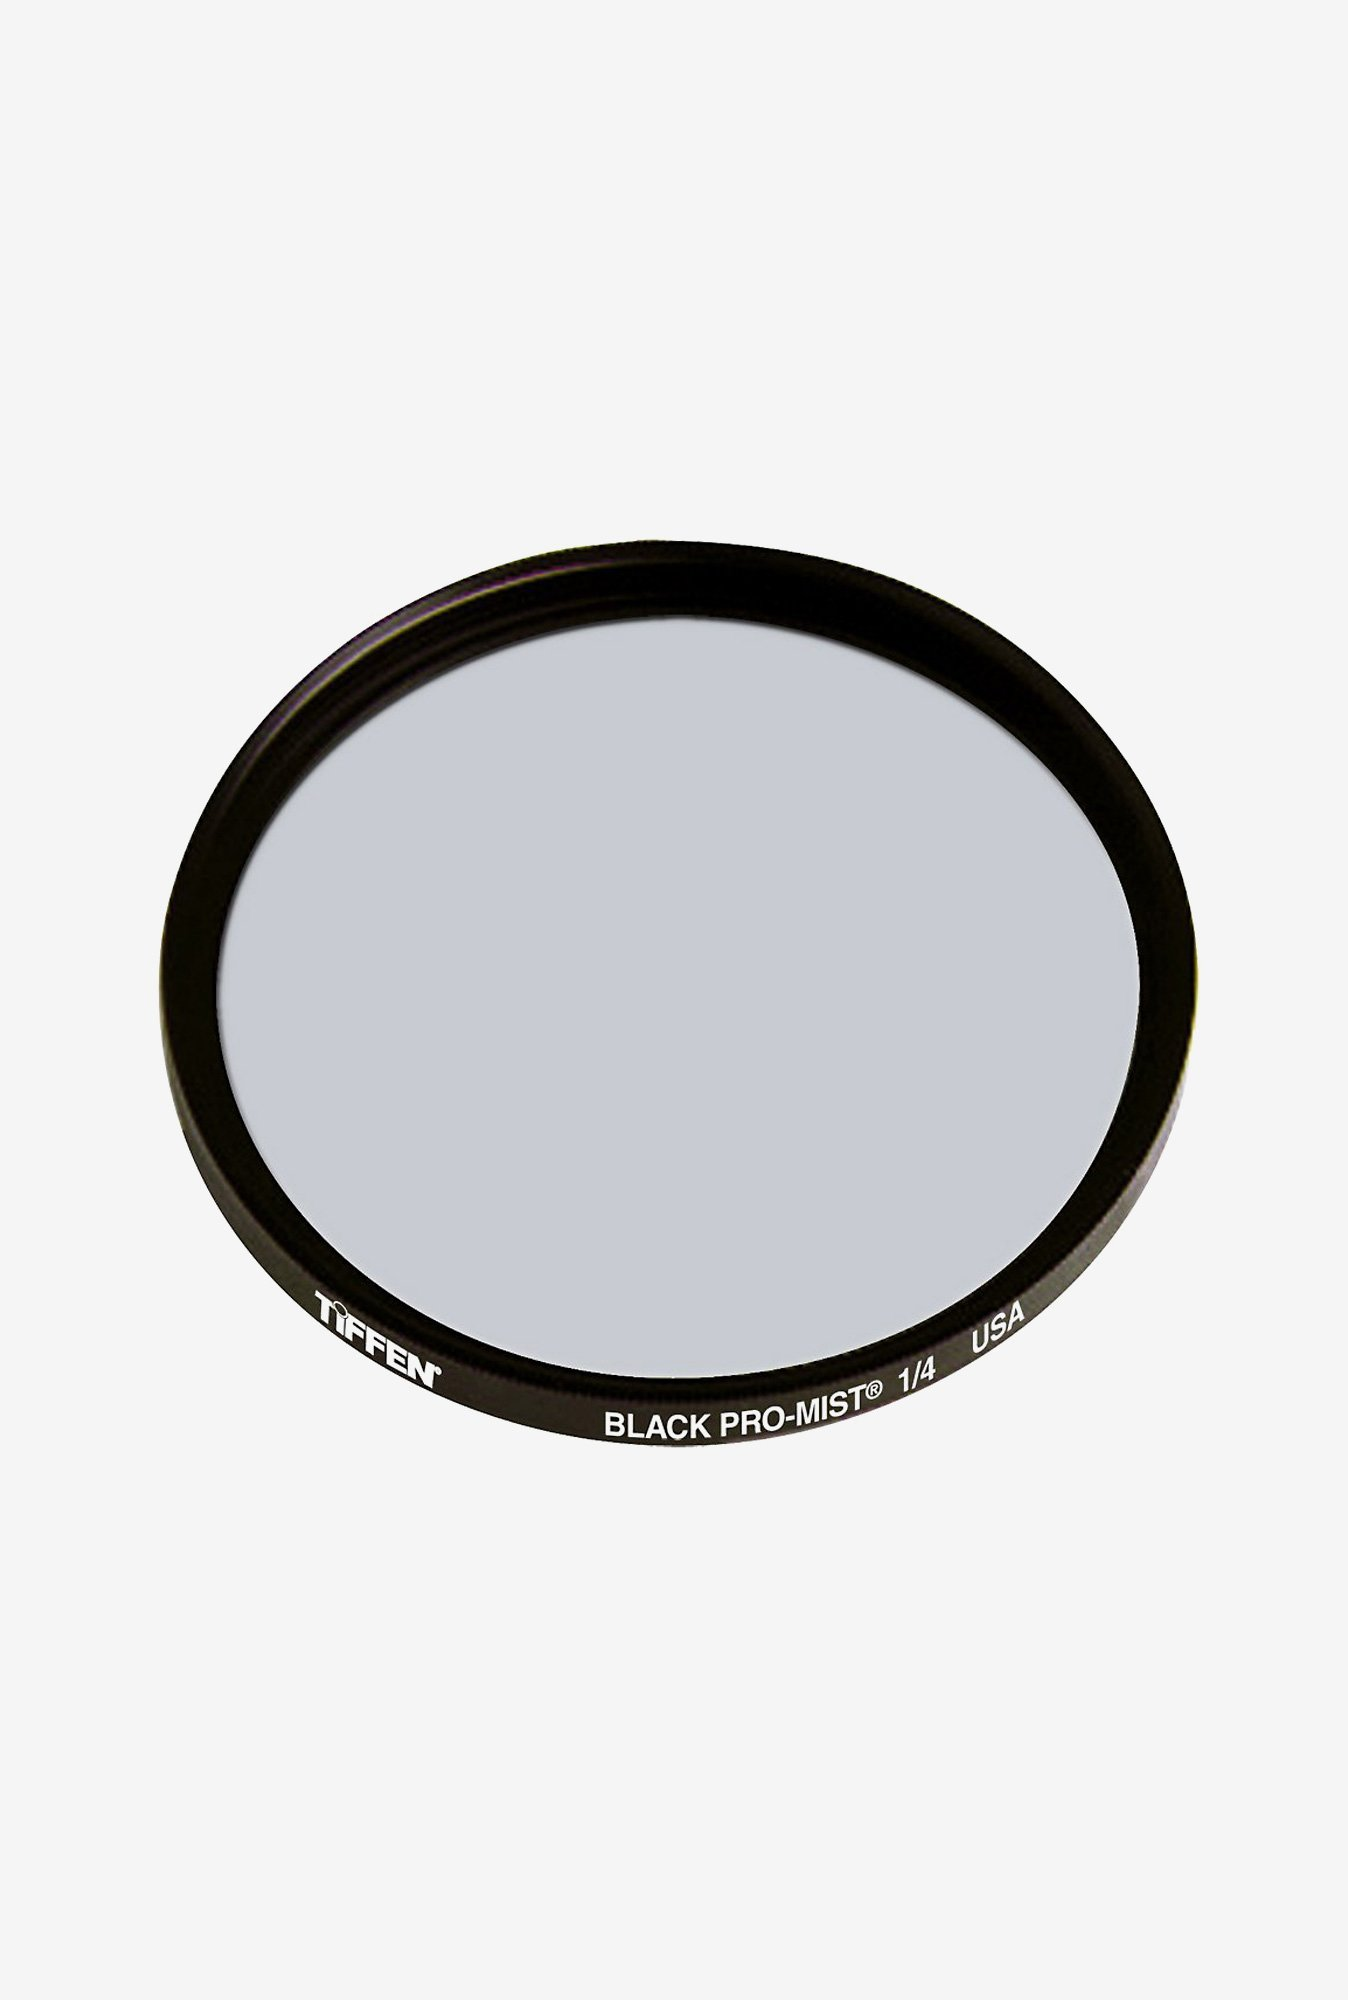 Tiffen 52mm Black Pro Mist 1/4 Filter (Black)